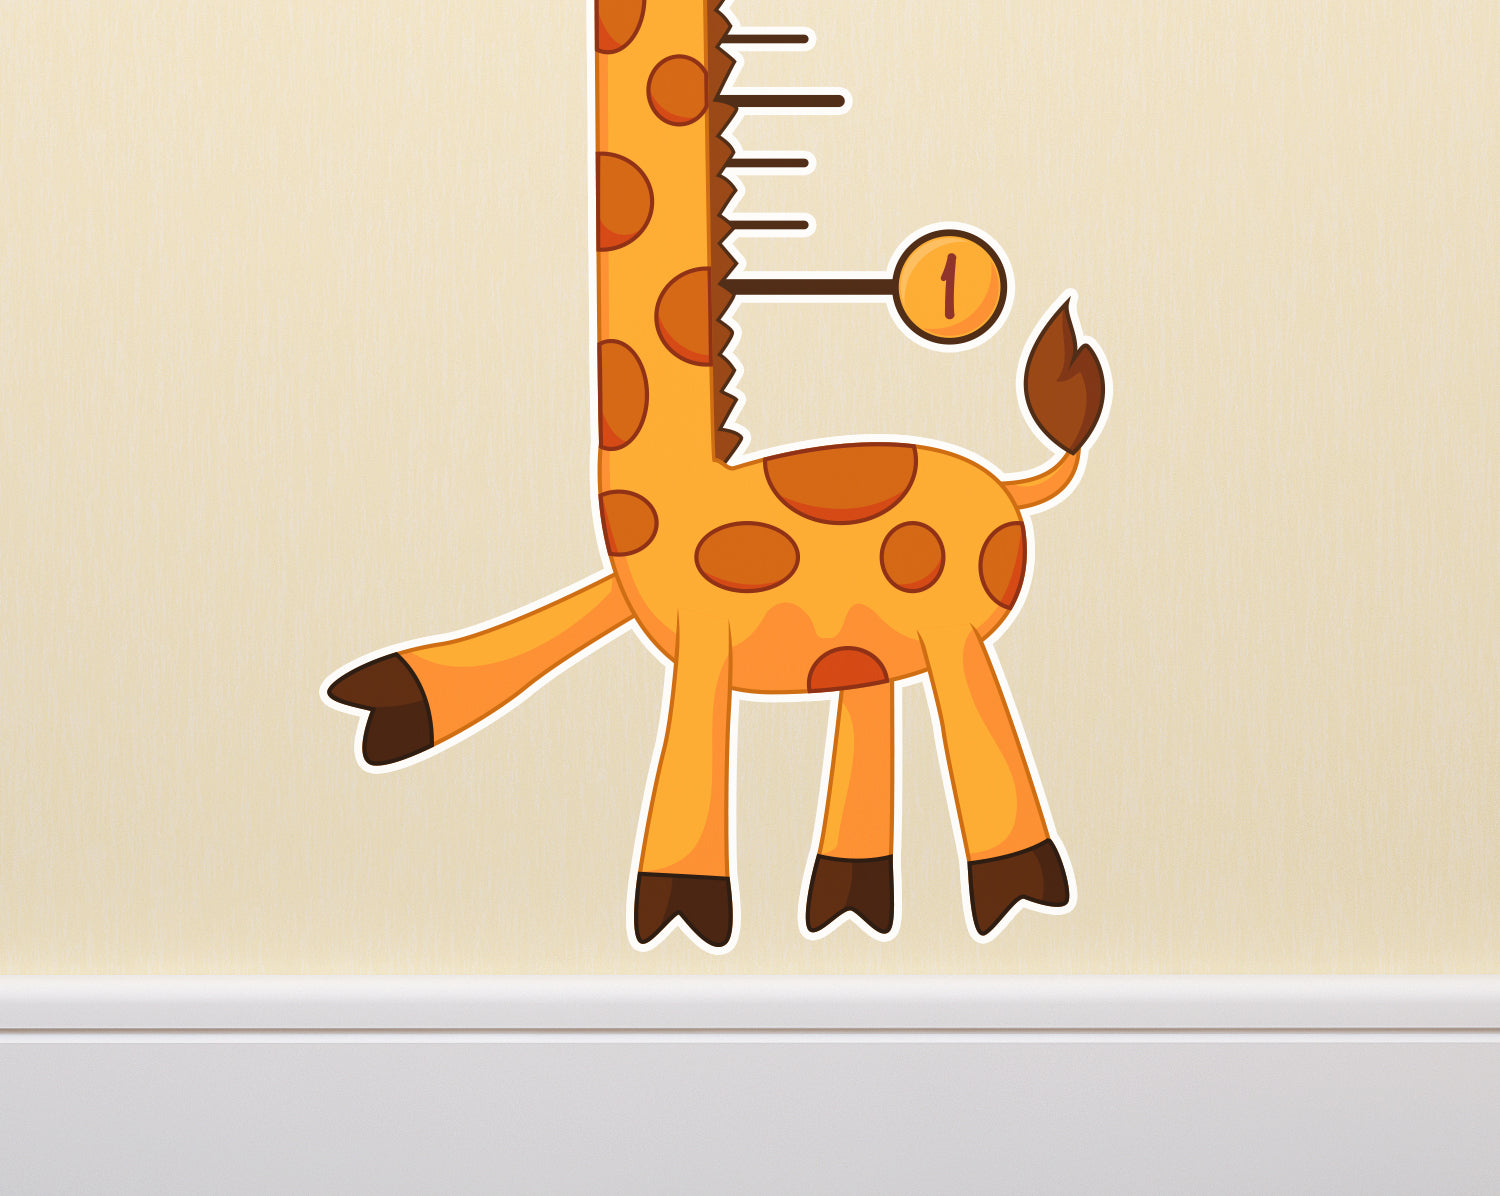 Kids giraffe growth chart wall decal stickerwhale remember every moment with our giraffe themed growth chart geenschuldenfo Image collections